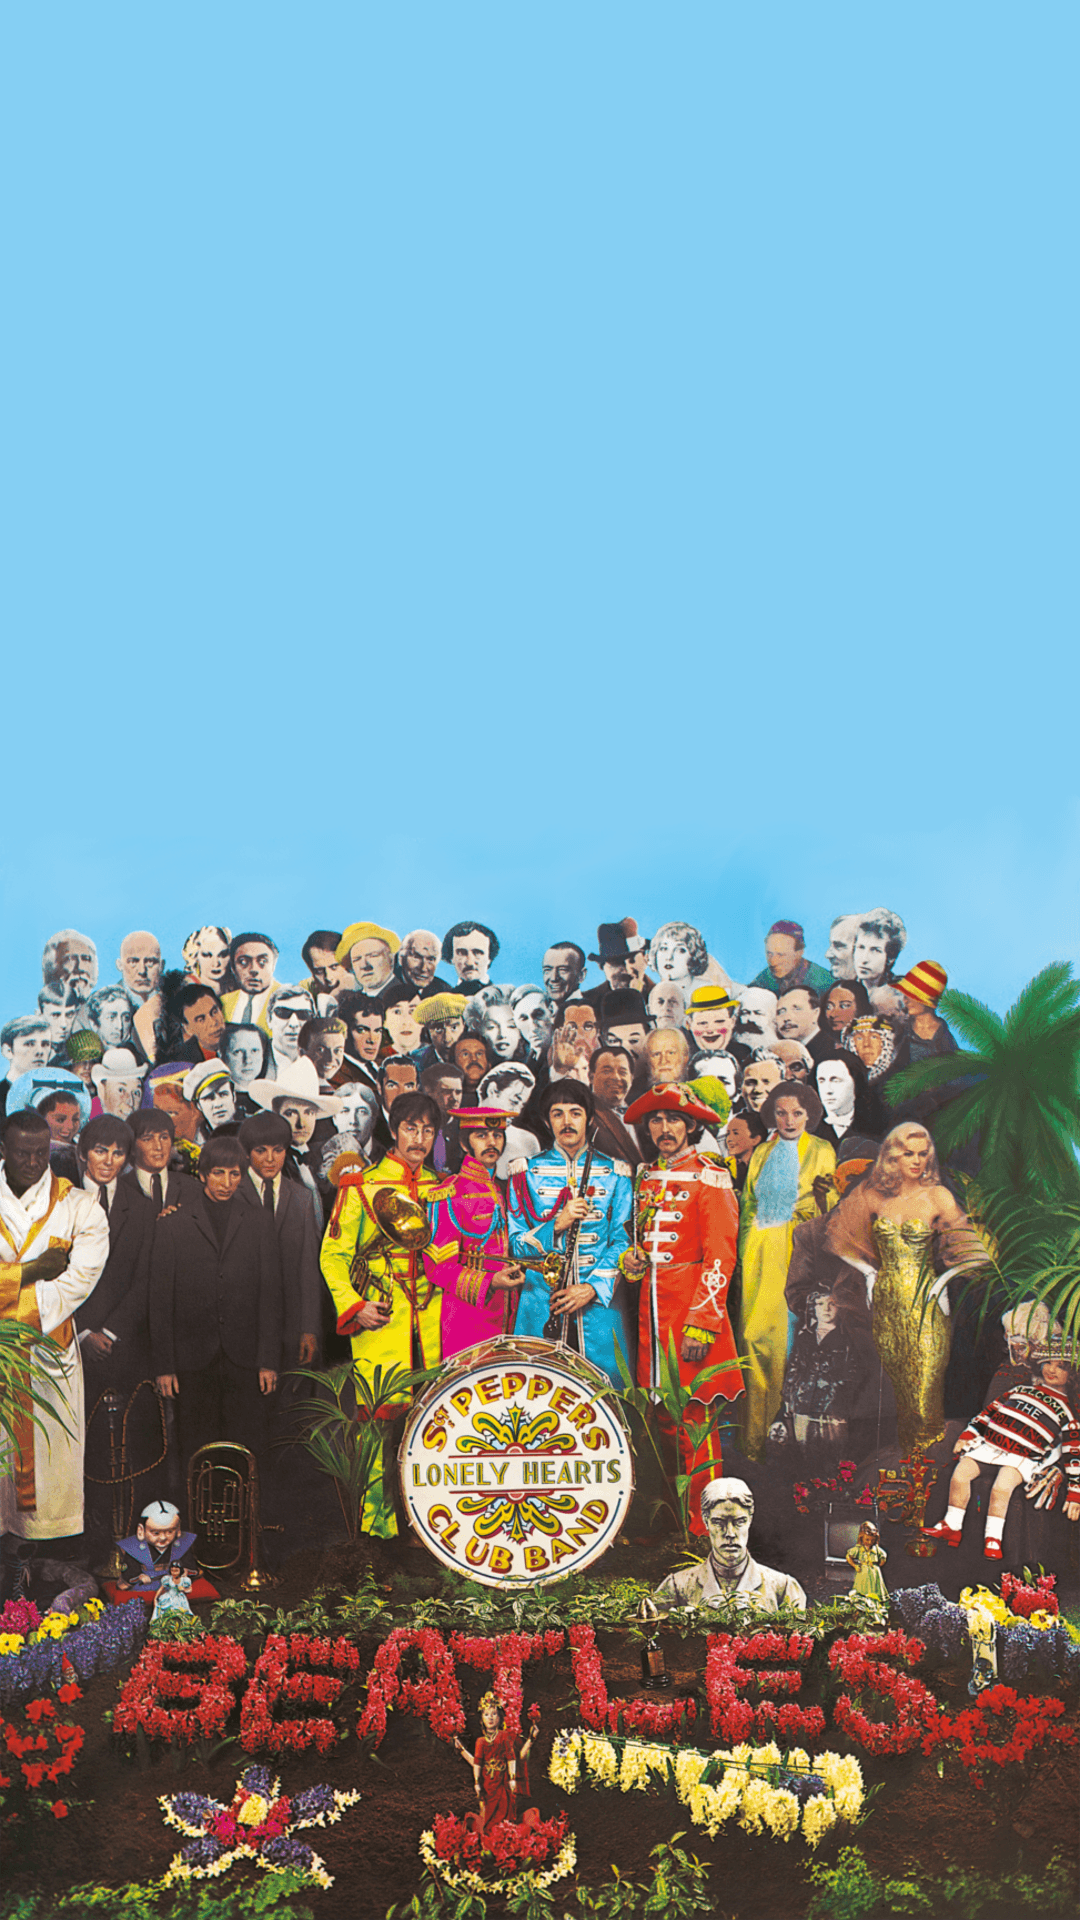 Обои The beatles, sgt. peppers lonely hearts club band, yellow submarine. Музыка foto 4